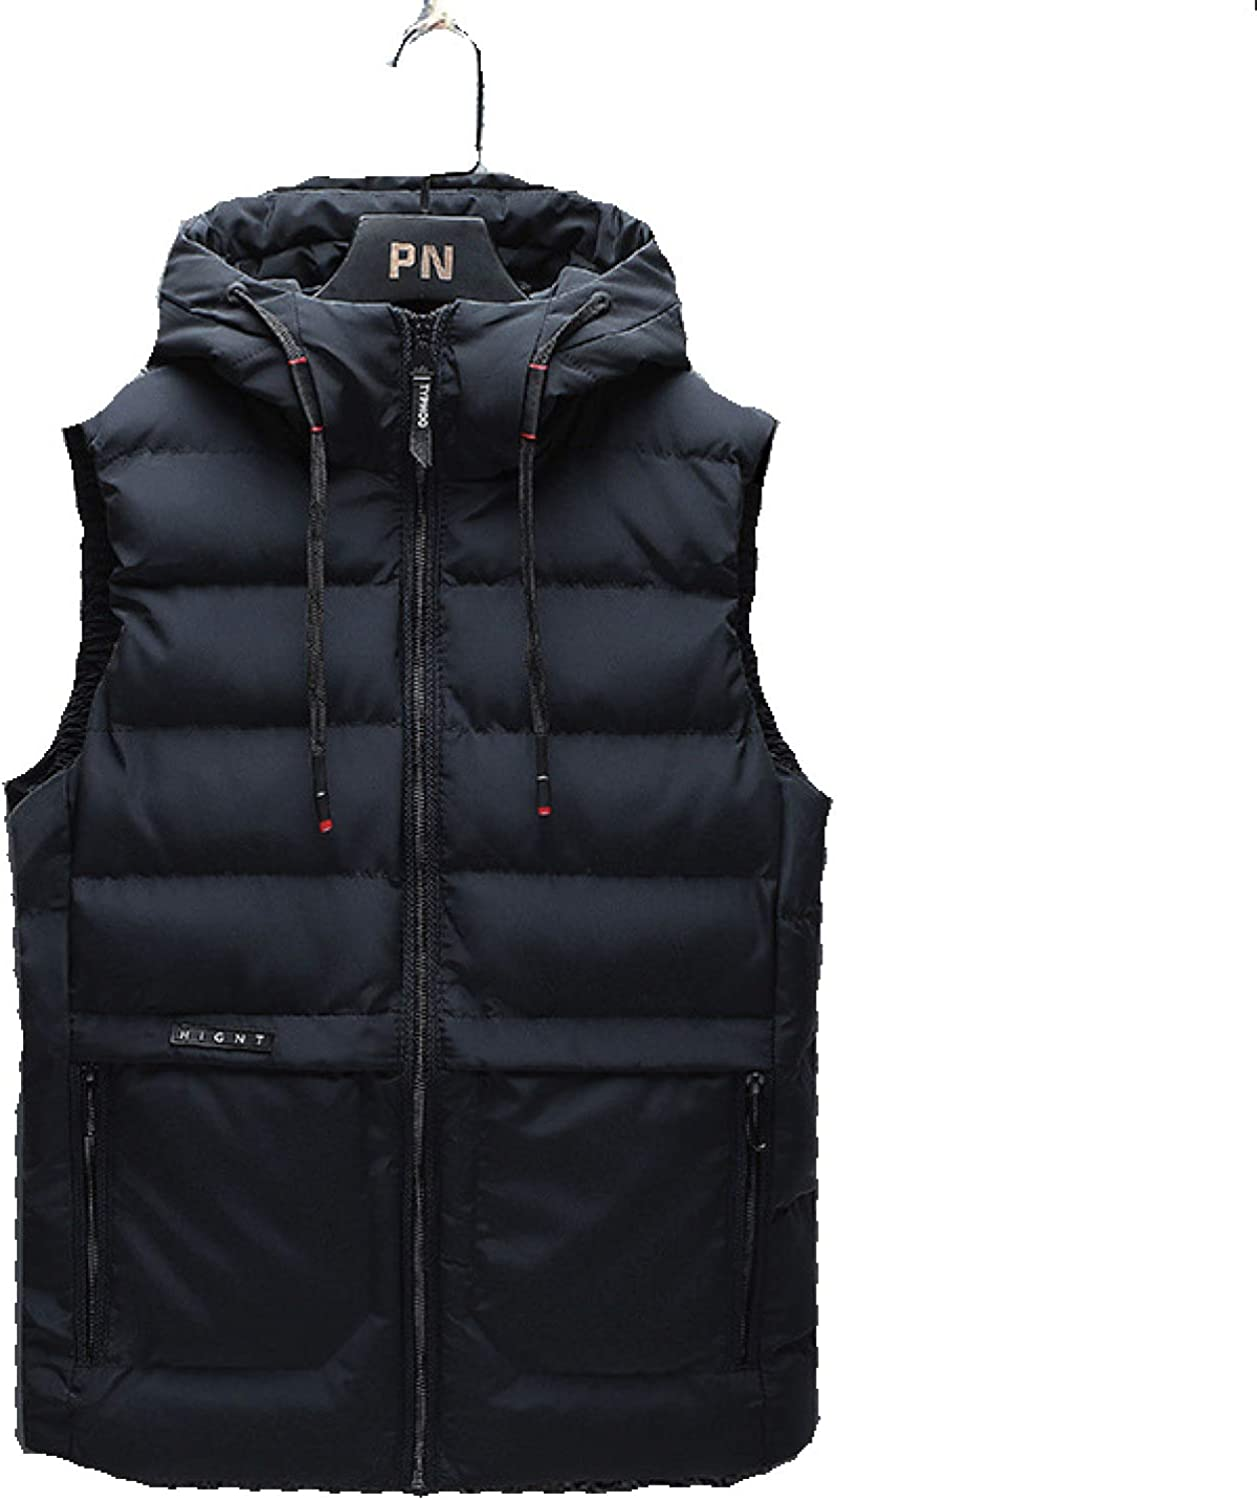 Mens Hood Puffer Quilted Vest Polyester Stand Collar Zipper Up Sleeveless Jacket With Side Pockets Waistcoat Outwear